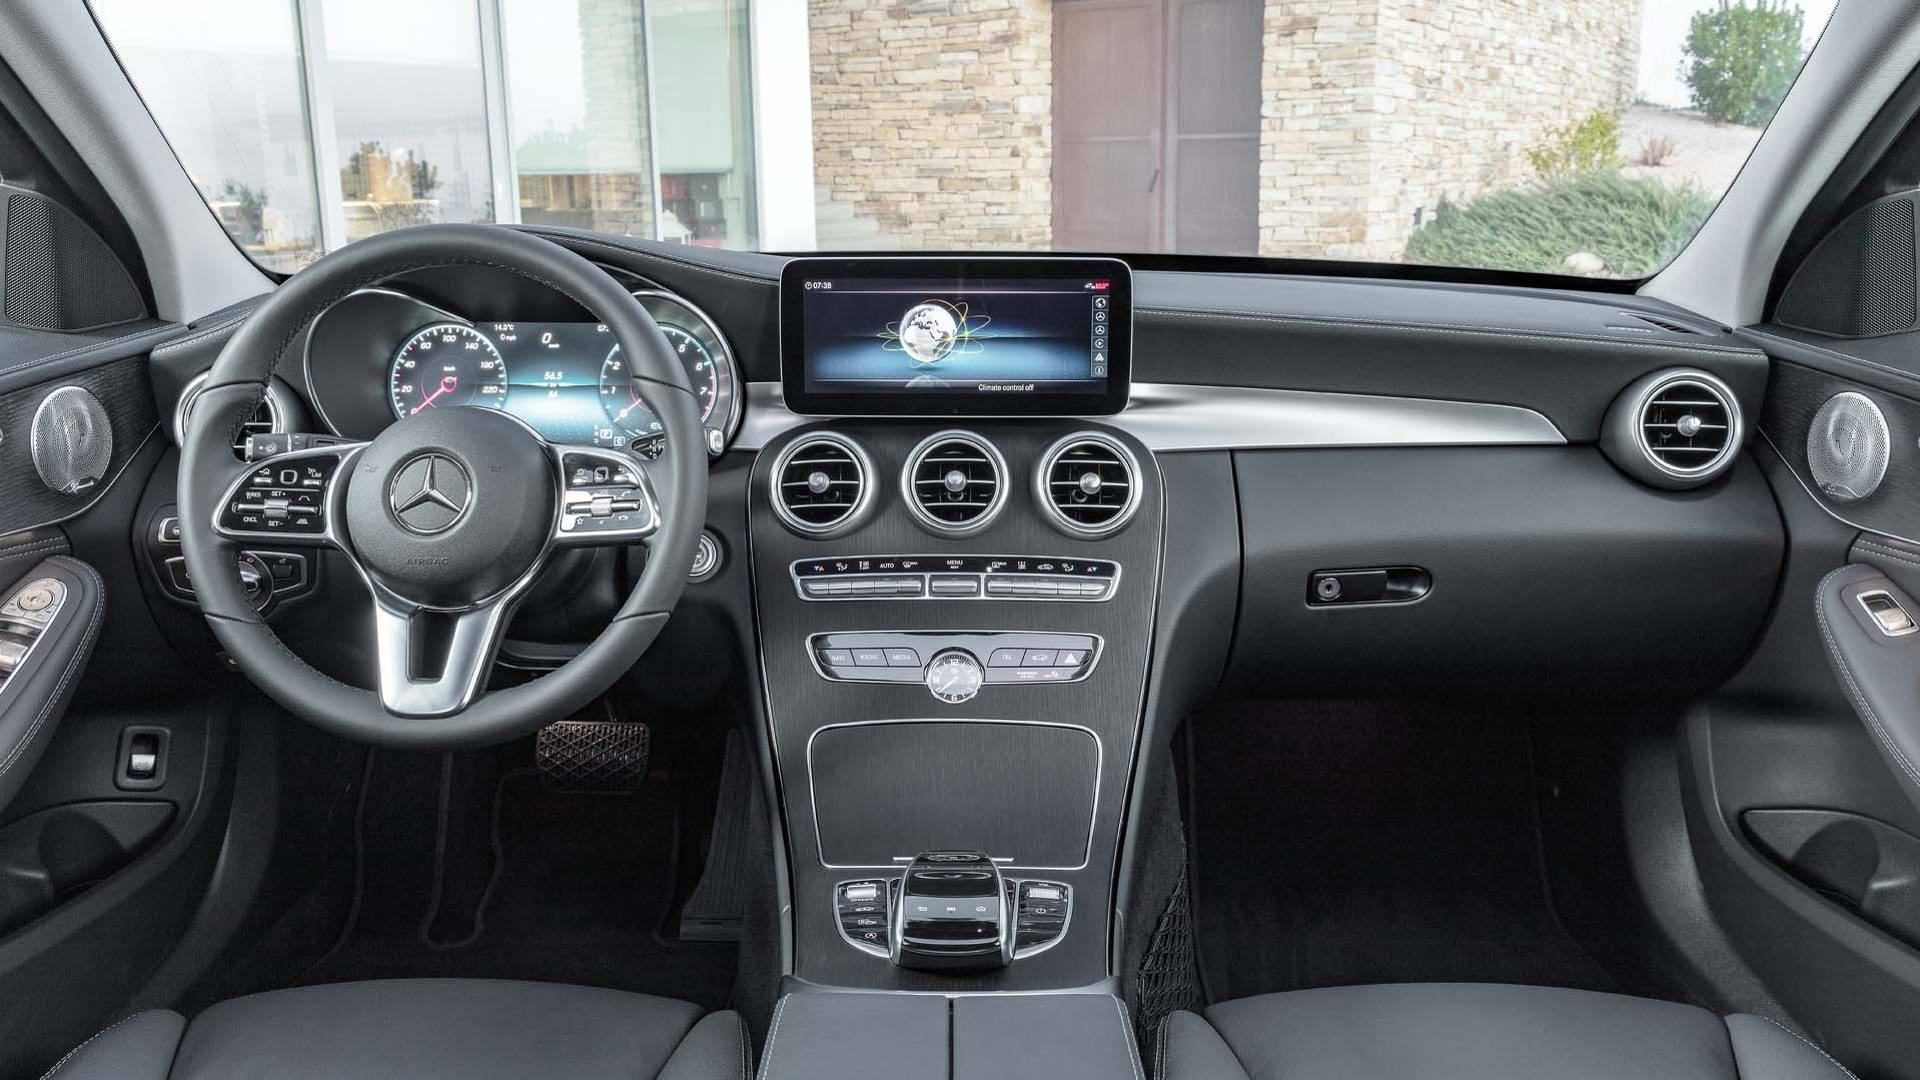 Mercedes-Benz Classe C — interior